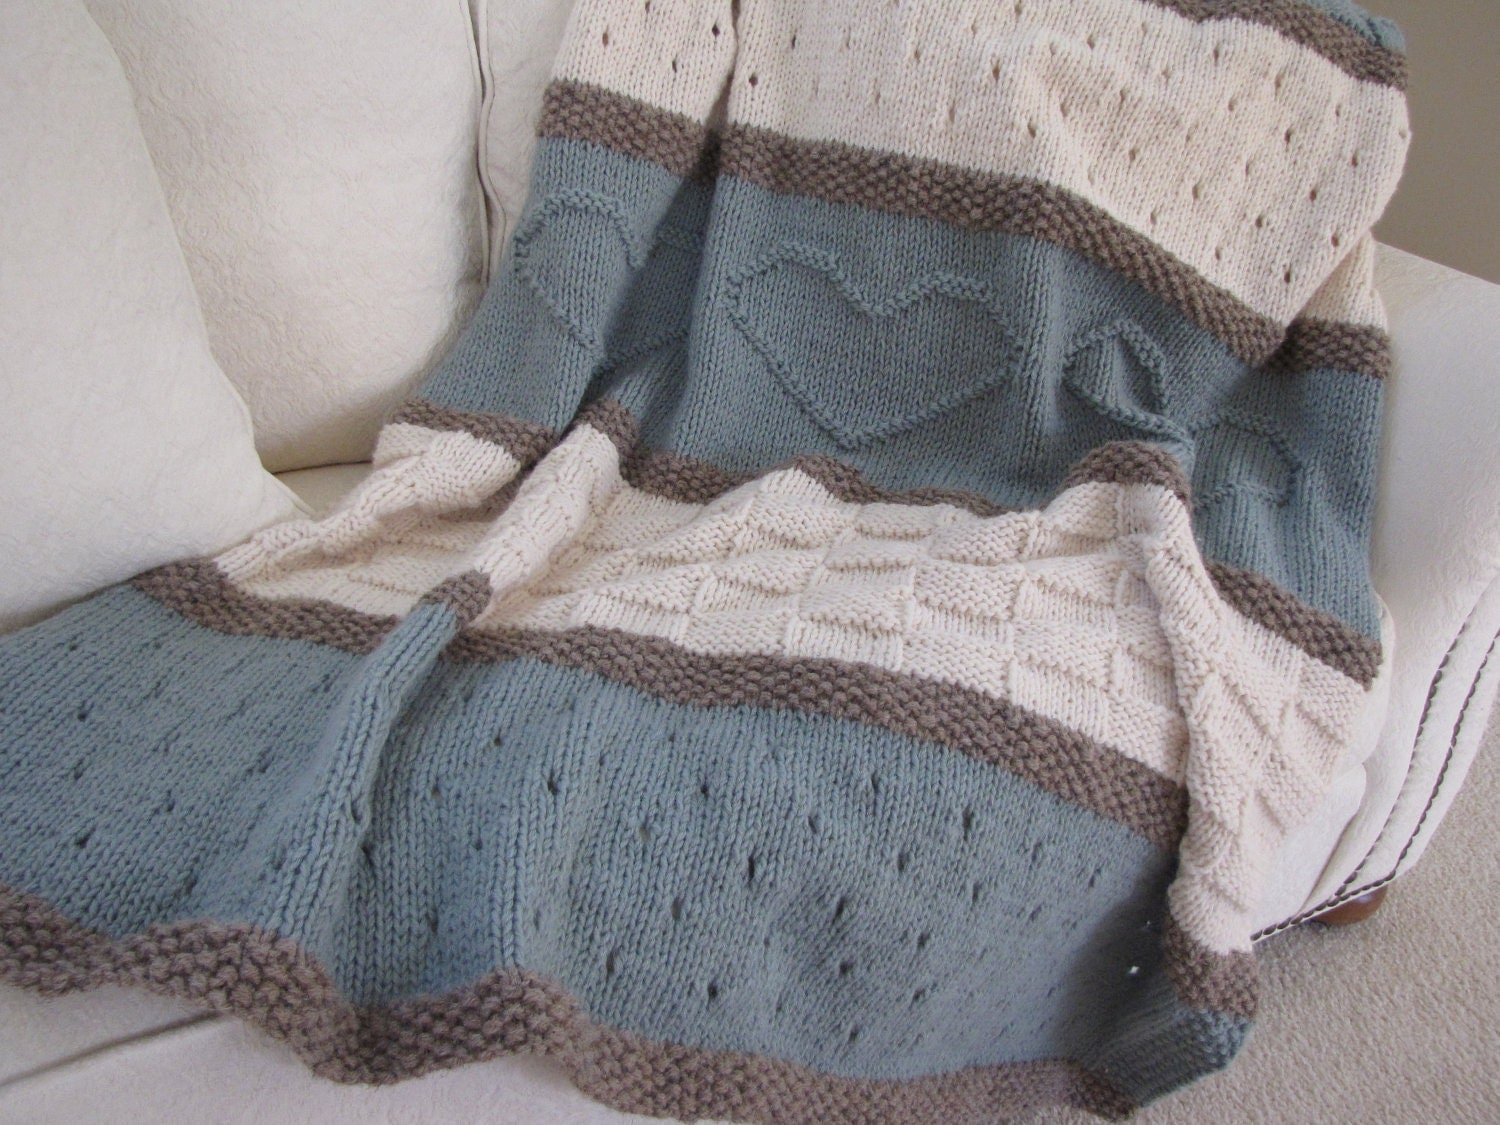 Knitting Pattern Blanket Throw : Seaside Blanket Pattern knit blanket knit by TheKnittingCloset